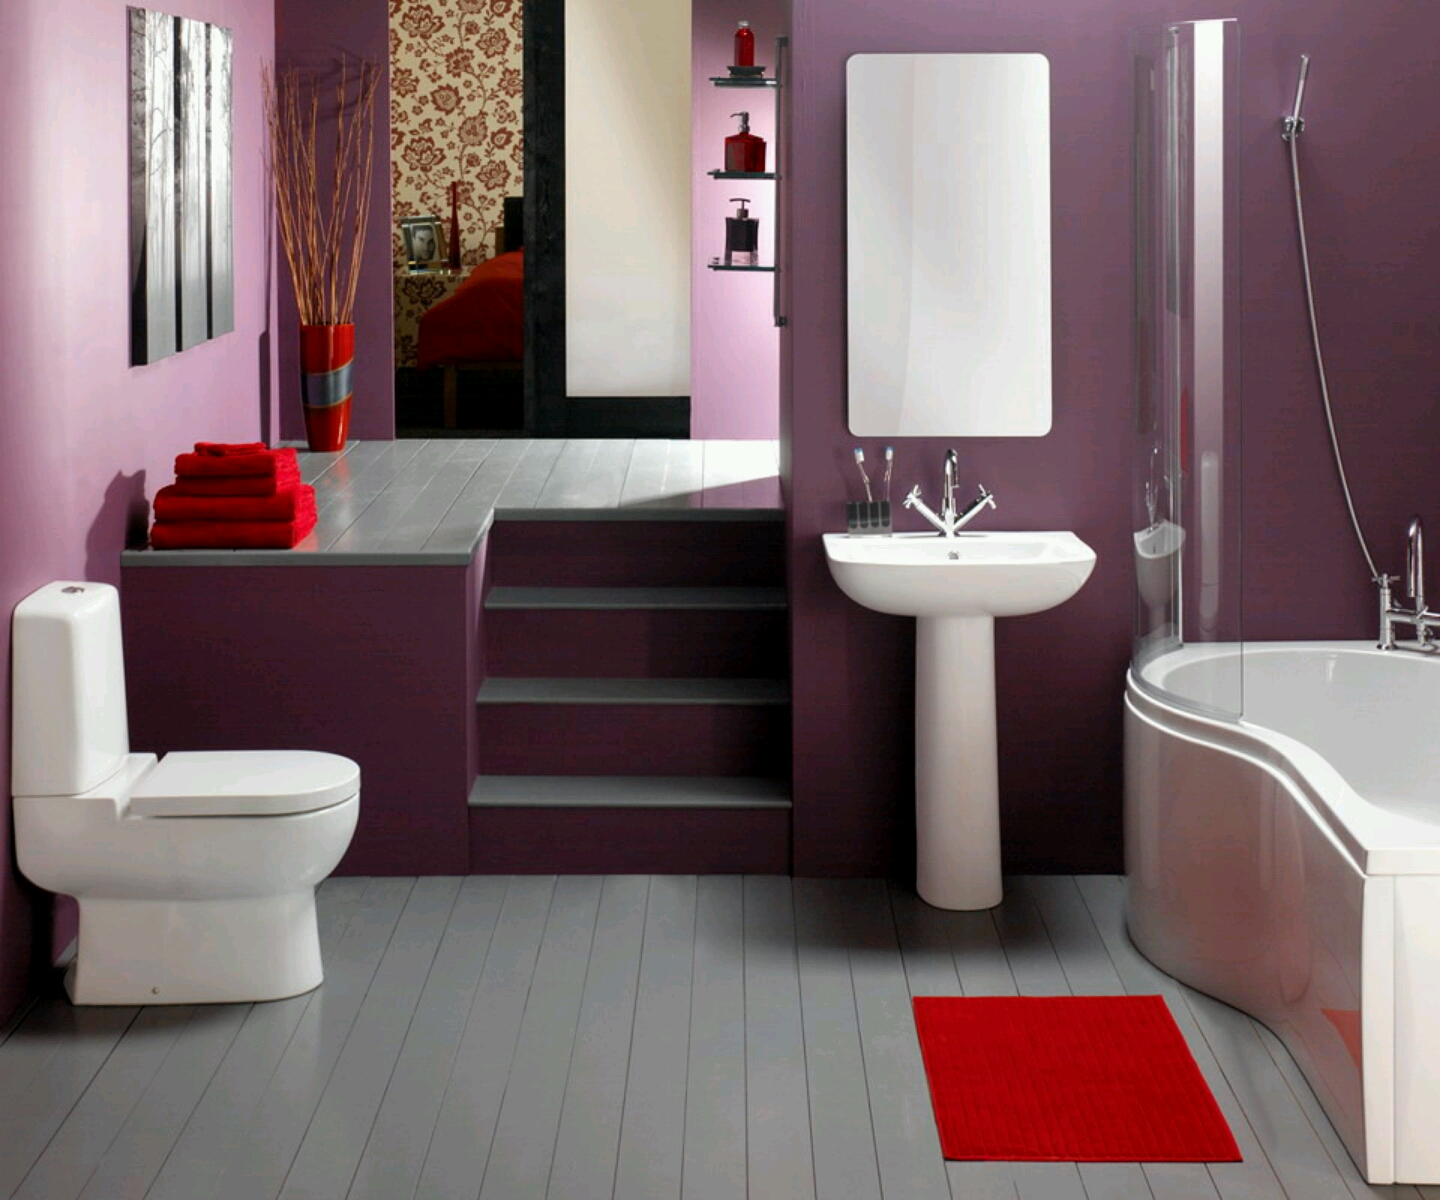 New home designs latest luxury modern bathrooms designs for Contemporary bathroom design ideas